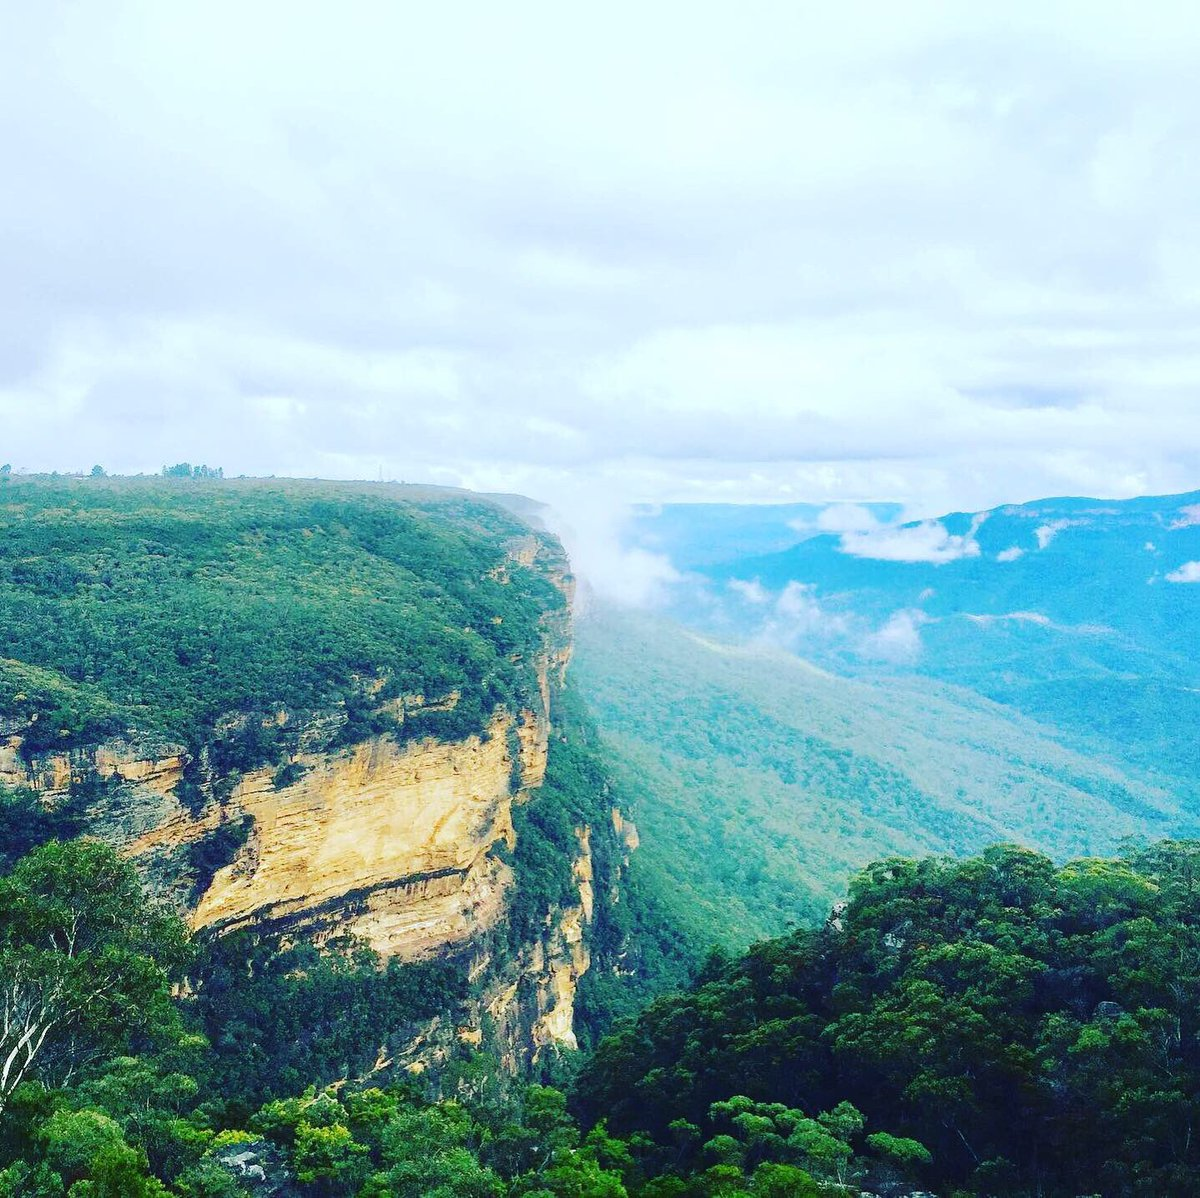 I literally live in the clouds  ⁣ .⁣ .⁣ .⁣ .⁣ .⁣ #trip # #bluemountainsnsw #dronestagram #lovesydney #nature #bluemountains #sunset #travel #nsw #mountains #australiagram #bluemountainsnationalpark #royalnationalpark #katoomba #hiking #ig #visitnsw #visitbluemountainspic.twitter.com/X2JBF2QCoi